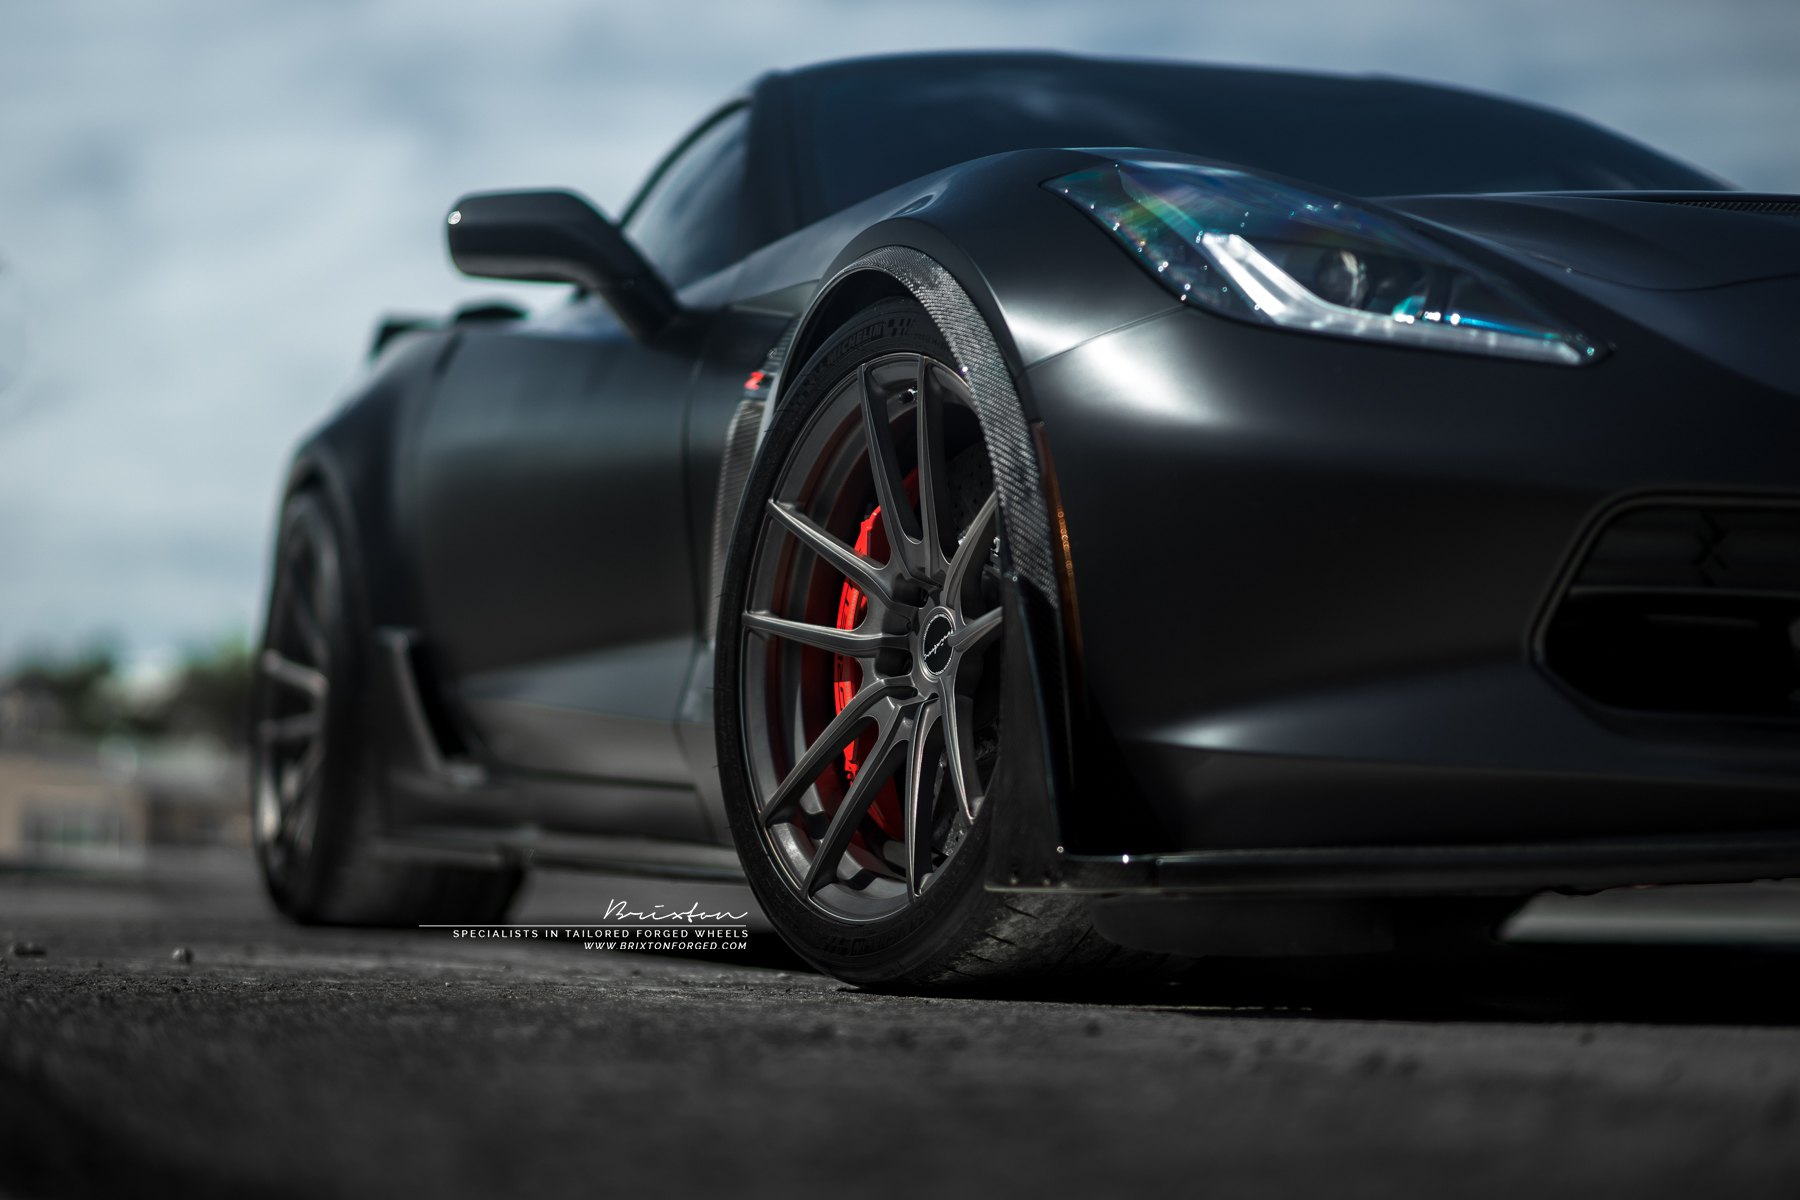 Smoke Black Brixton Forged Wheels on Chevy Corvette - Photo by Brixton Forged Wheels